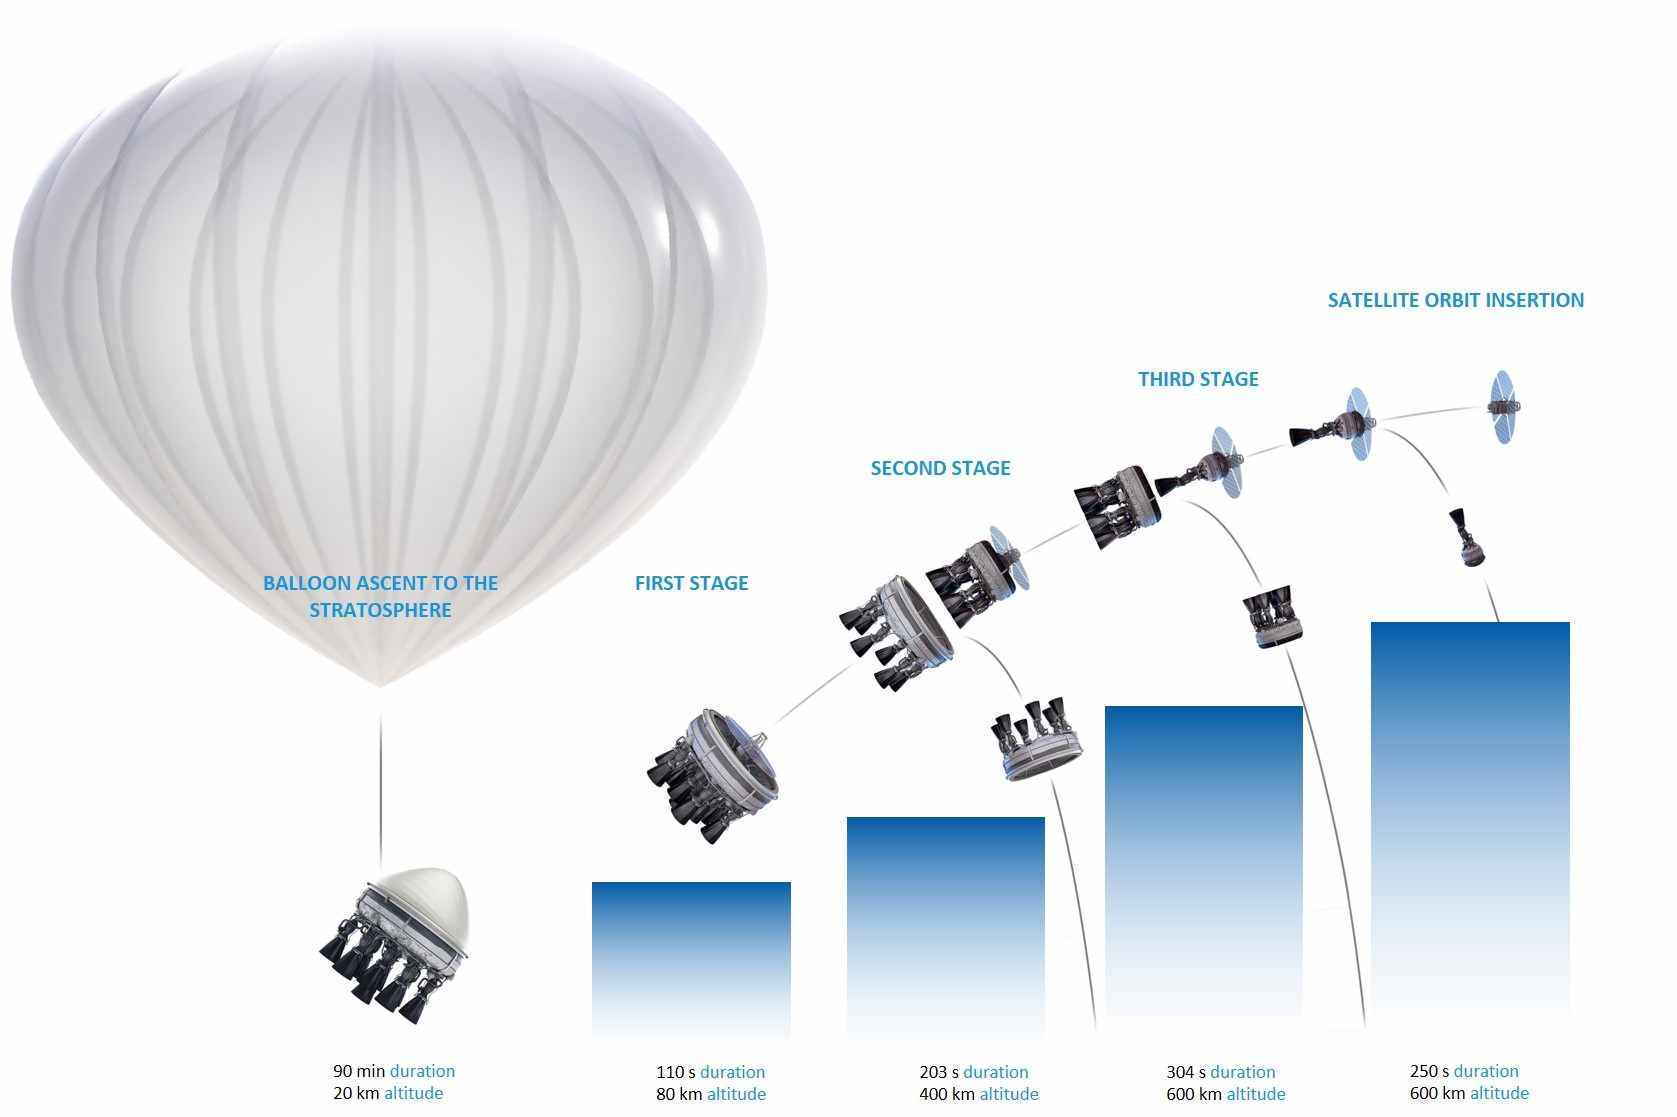 Zero2Infinity's plan for space tourism with balloons